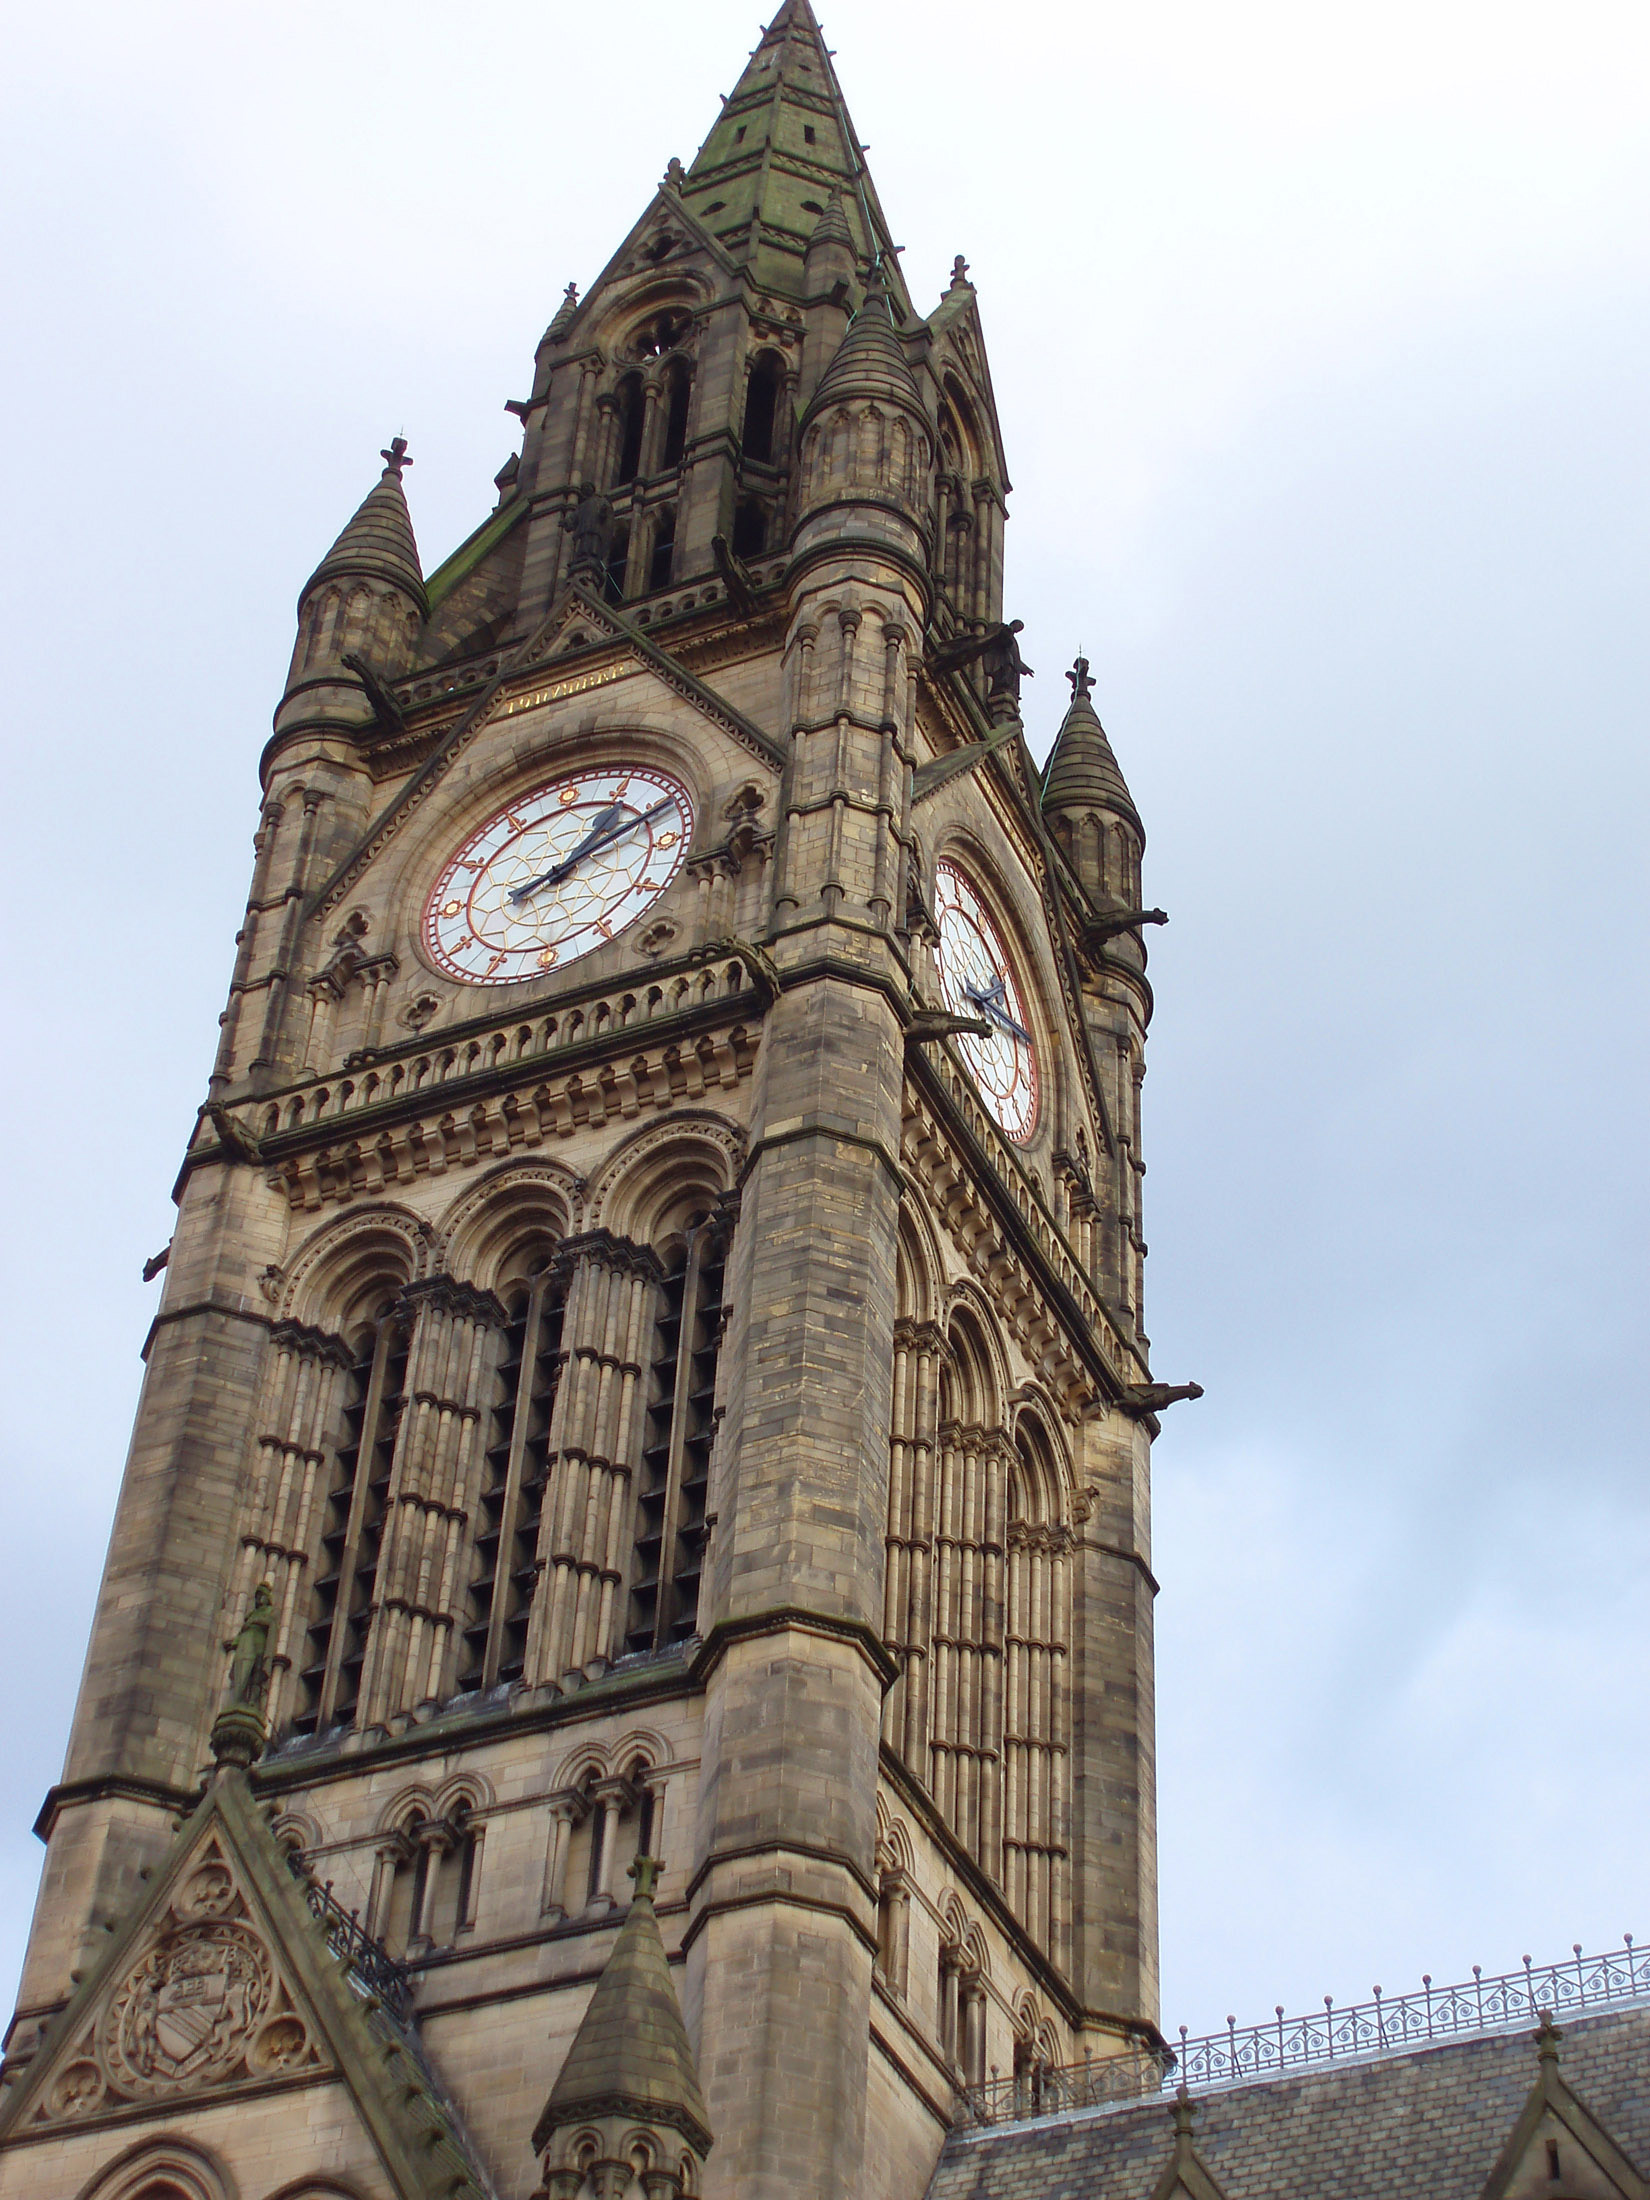 Exterior ornate stone facade of the Gothic revival clock tower on Manchester Town Hall with its four clock faces, Lancashire, UK